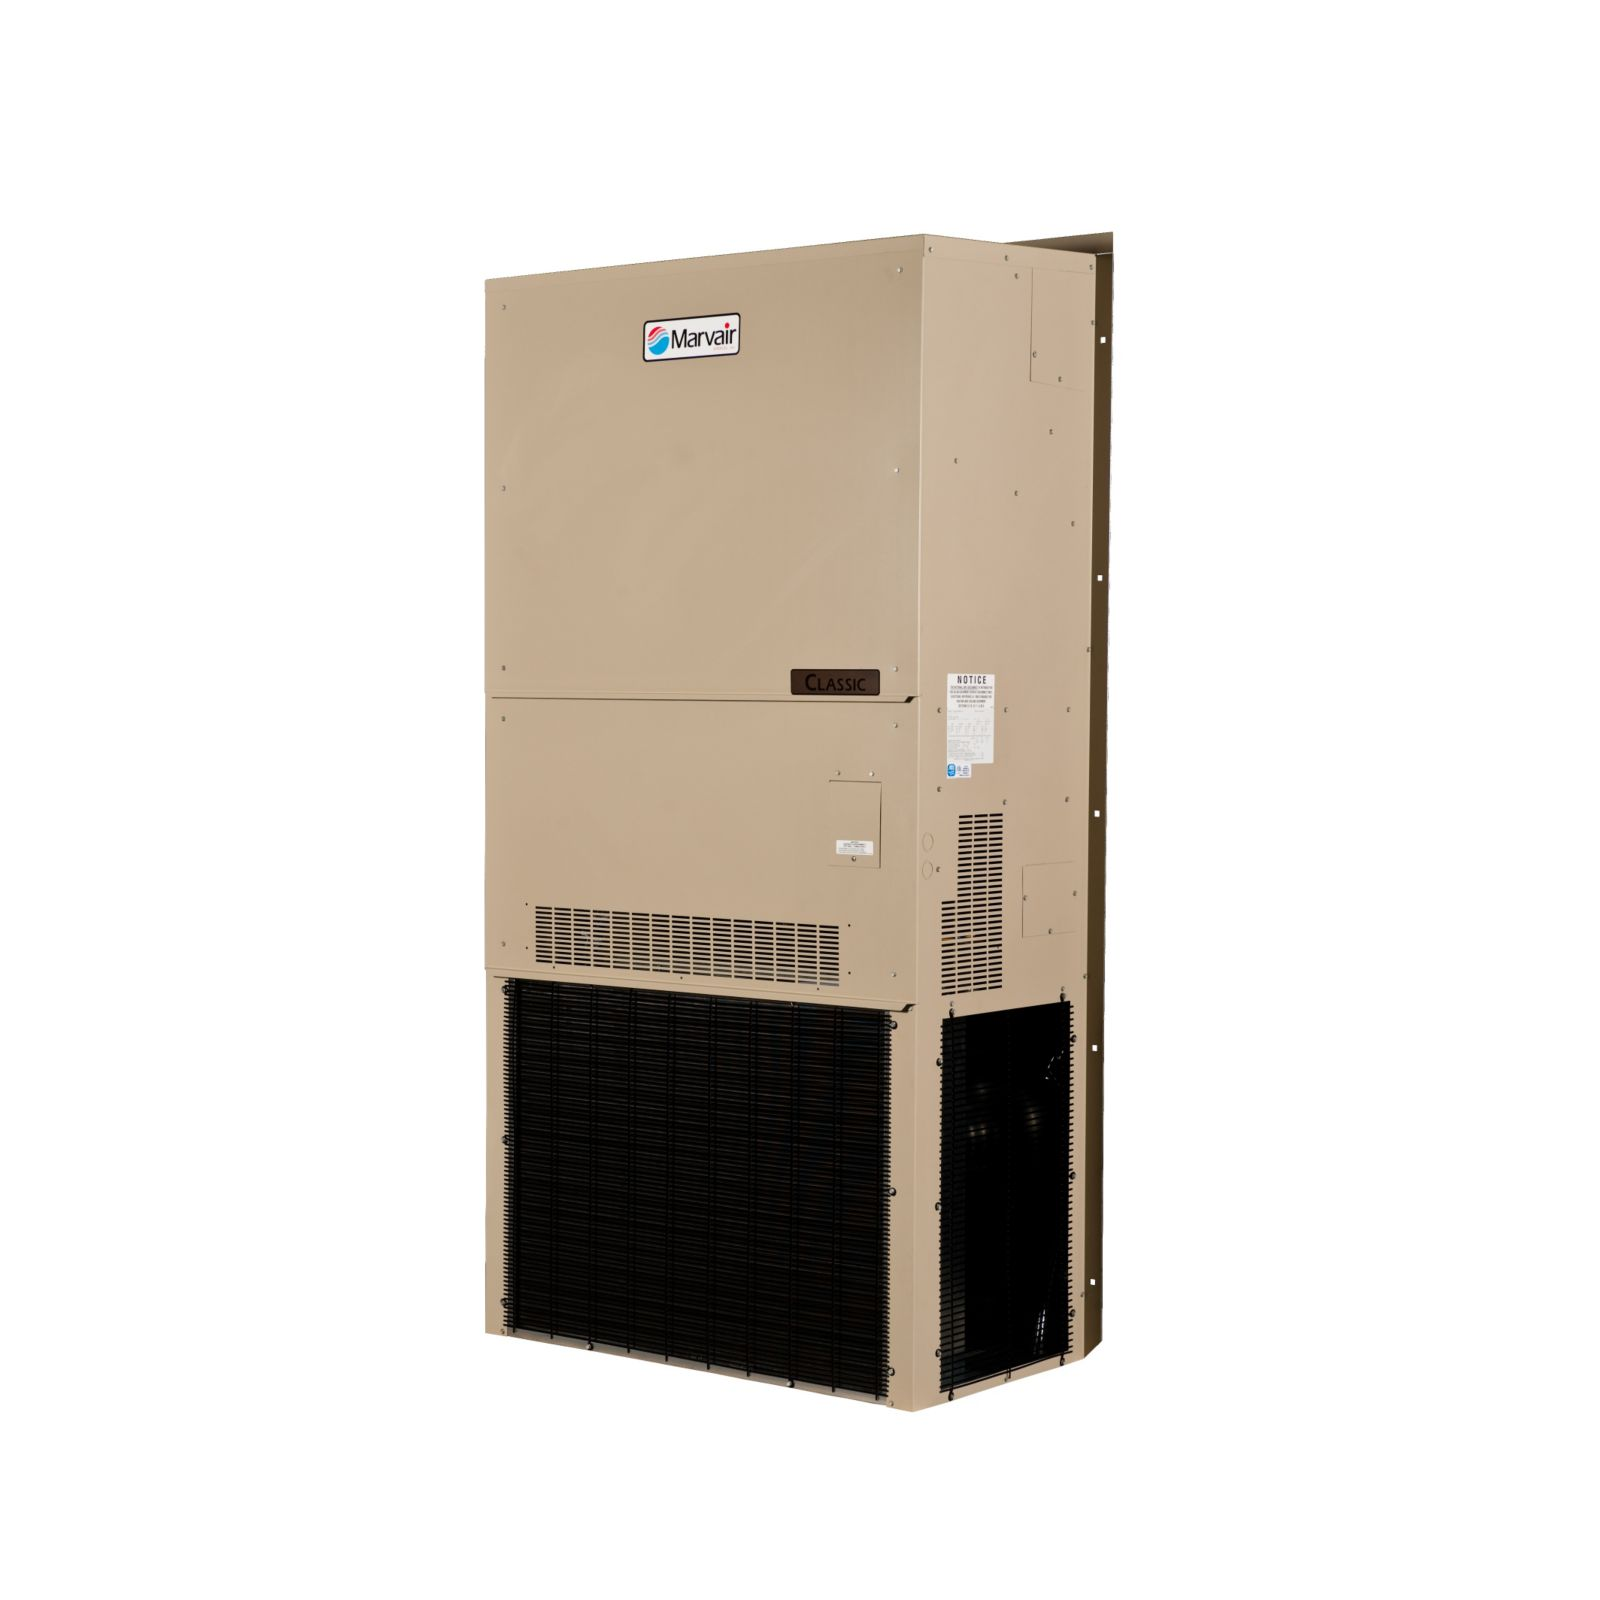 Marvair AVPA36HPA000NU-A2-100 - Wall Mount Heat Pump, Classic, 3 Ton, 208-230/1, No Heat, Manual Damper, Scroll, R410A